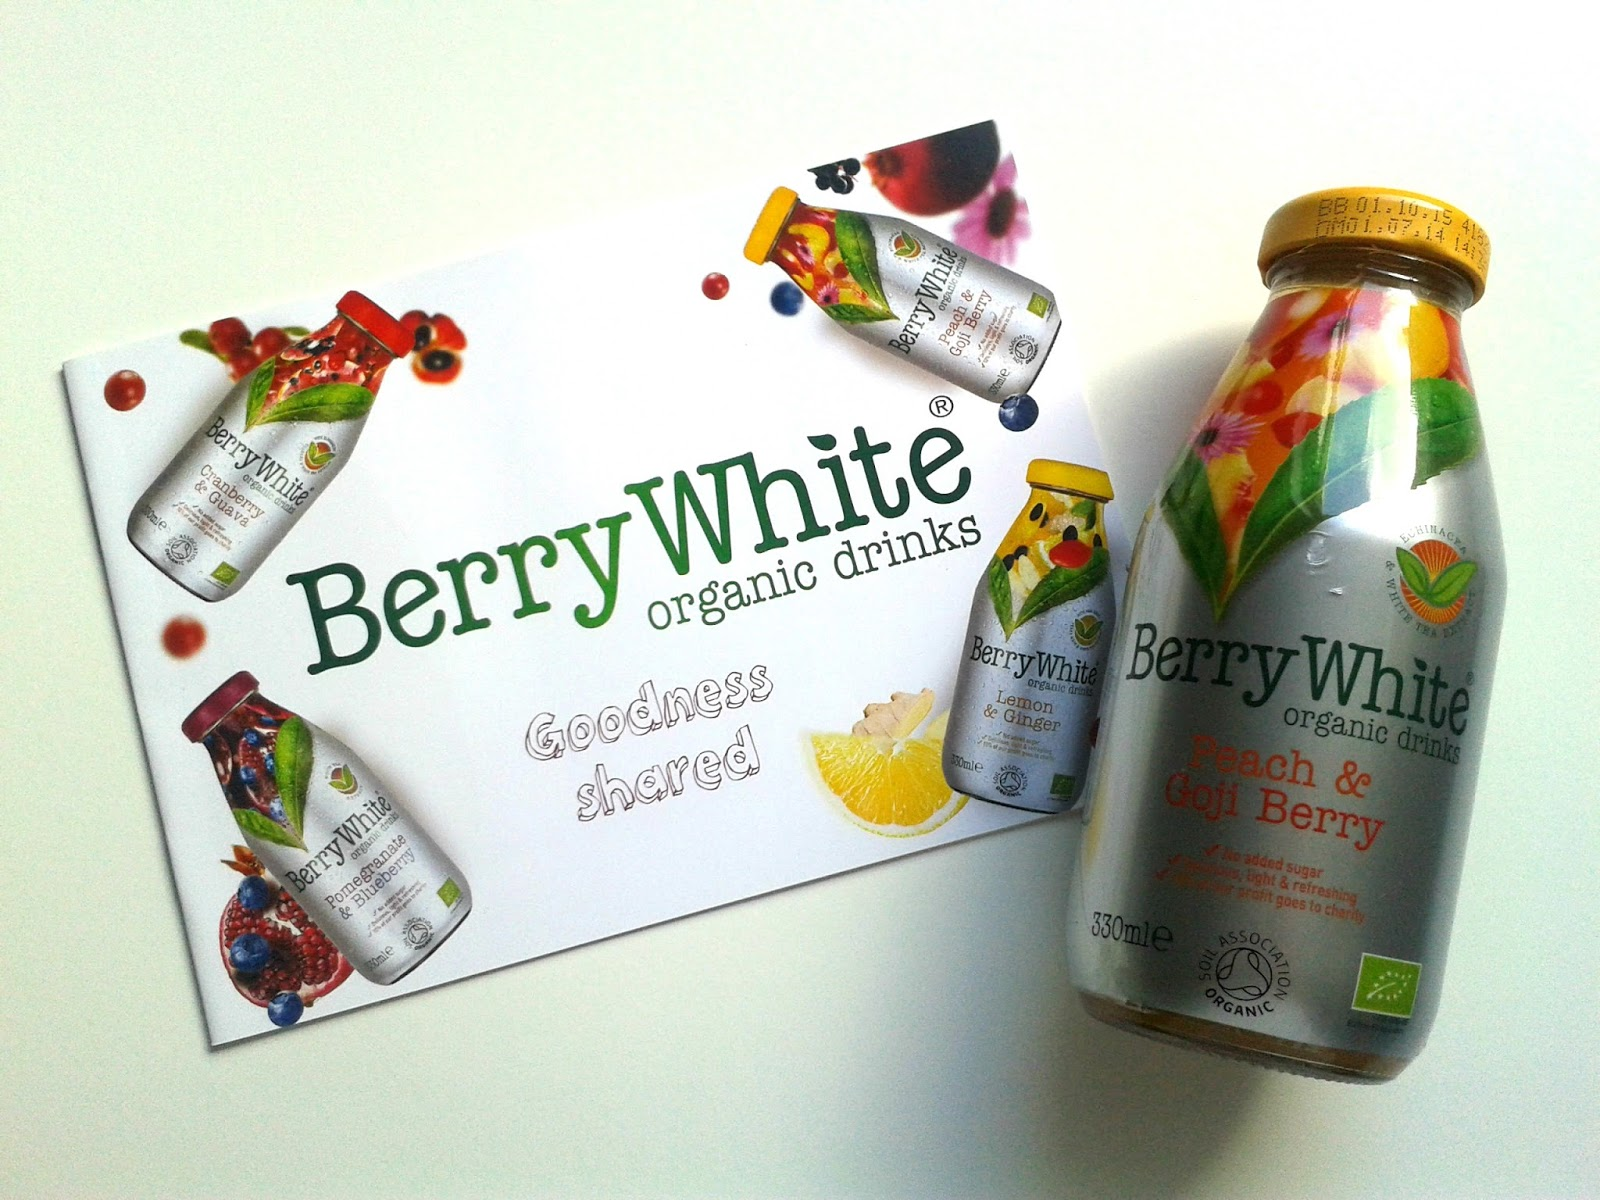 Berry White Peach & Goji Berry Organic Drink August Degustabox Review